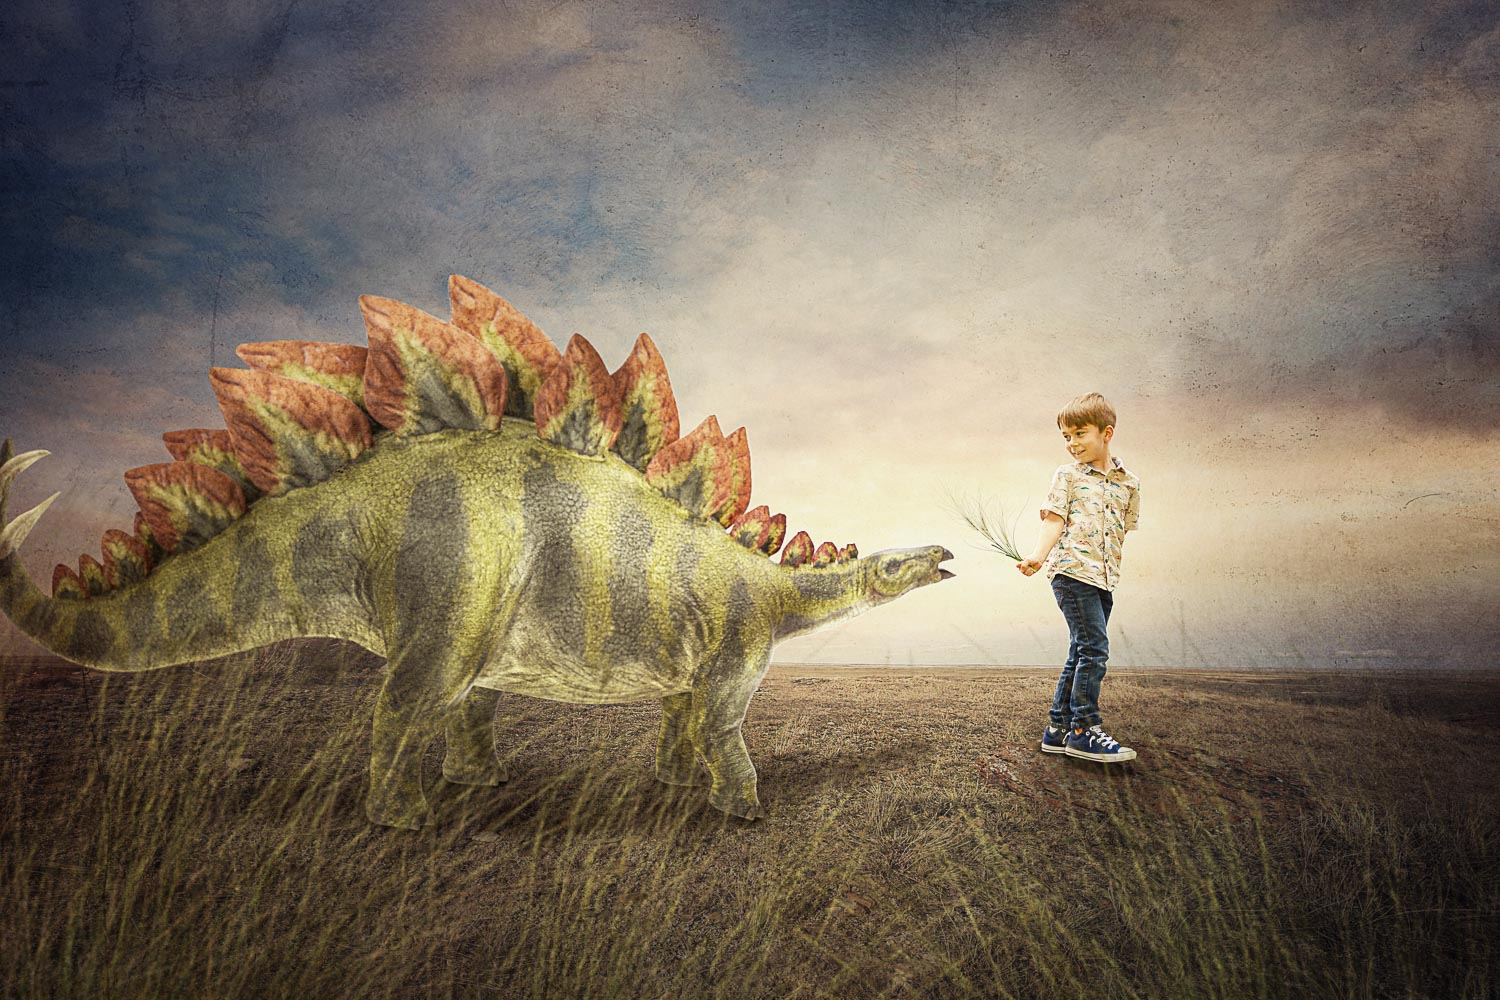 little boy feeding stegosaurus dinosaur storybook composite